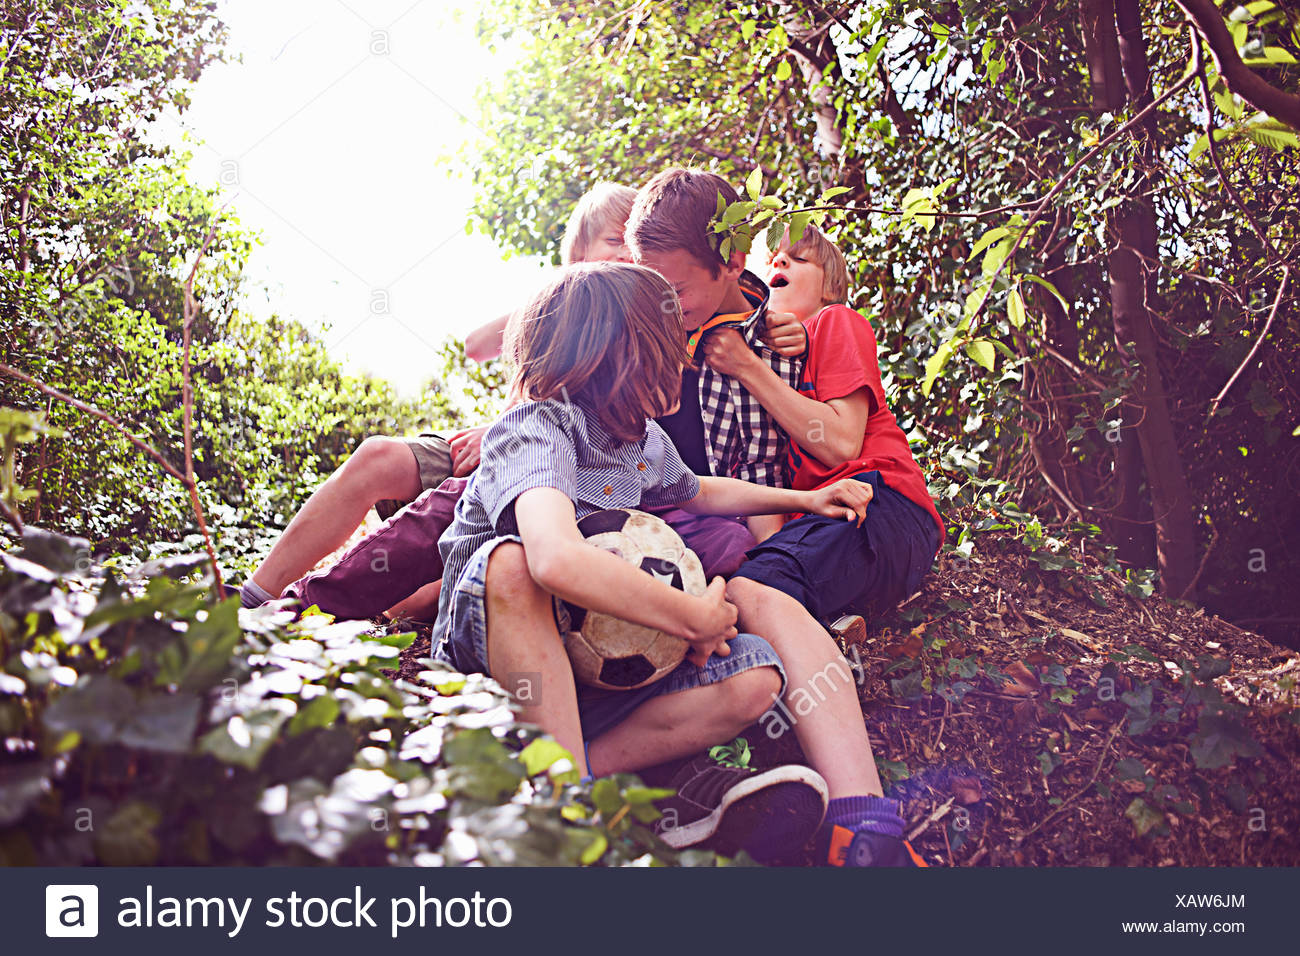 Boys playing in forest - Stock Image